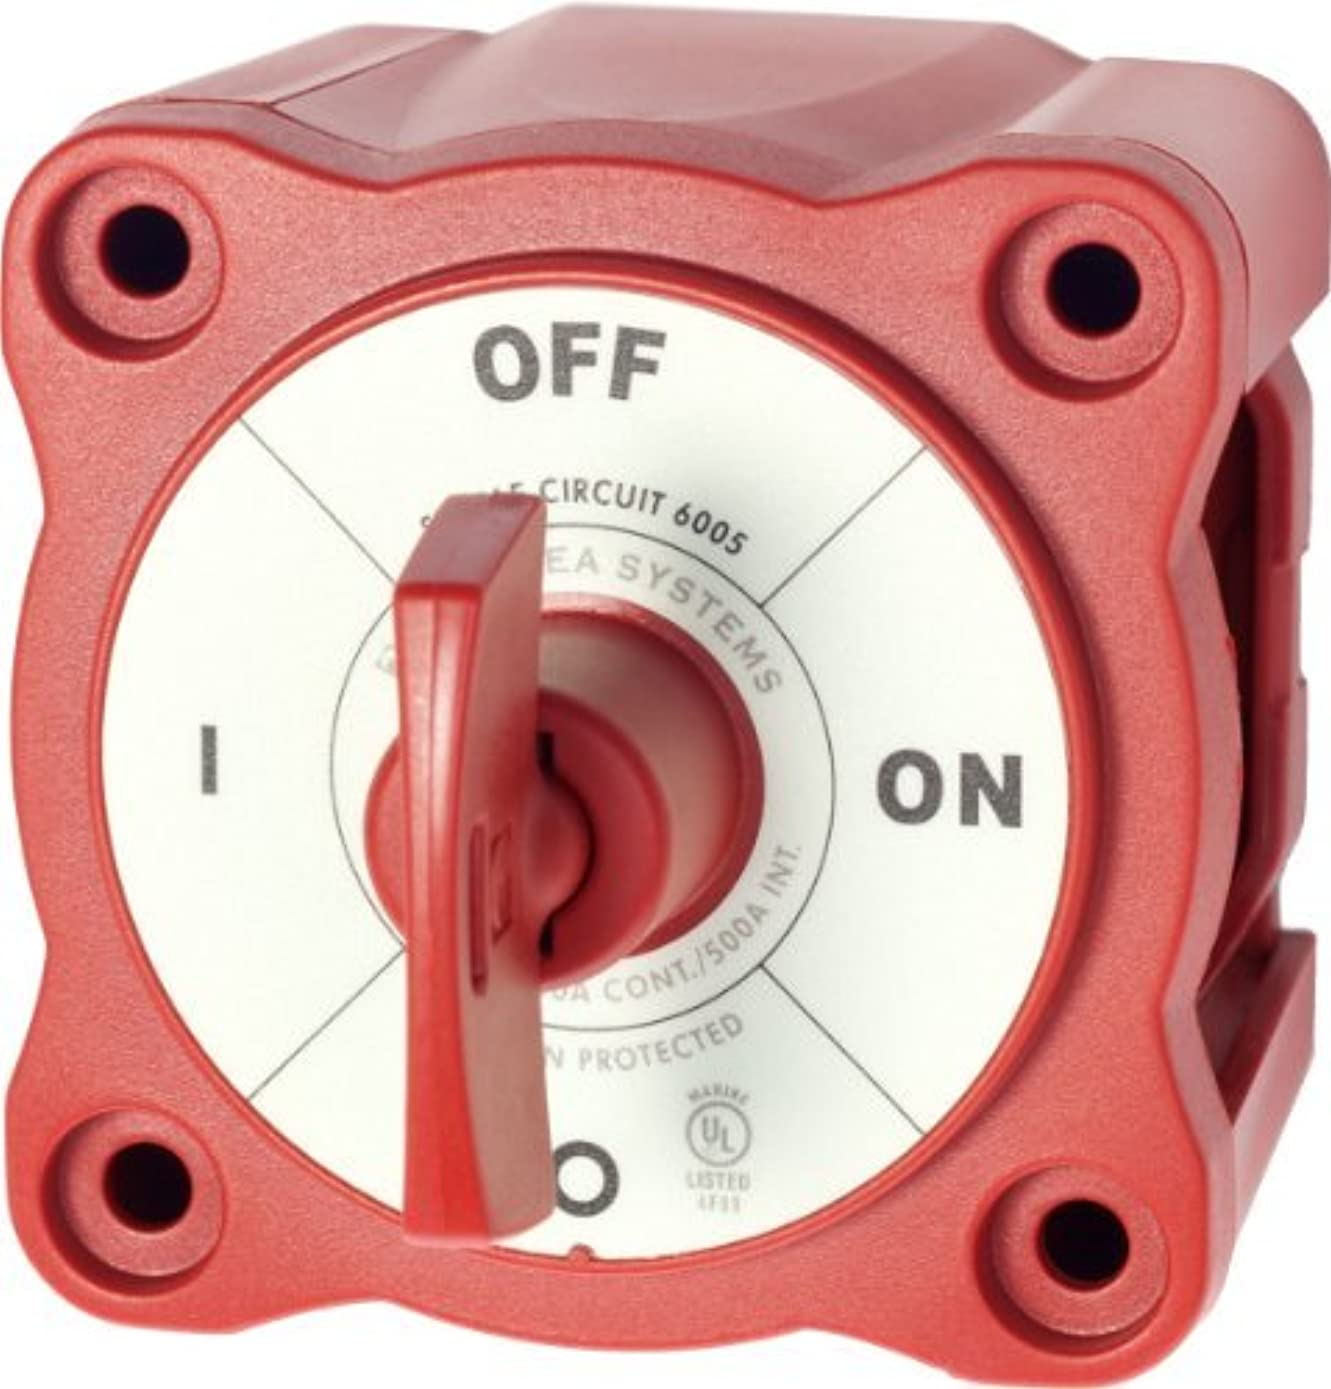 Blue Sea System 6005 Battery Switch Mini On/Off (25103) Color: Red Style: On-Off w/key, Model: 6005, Electronic Store